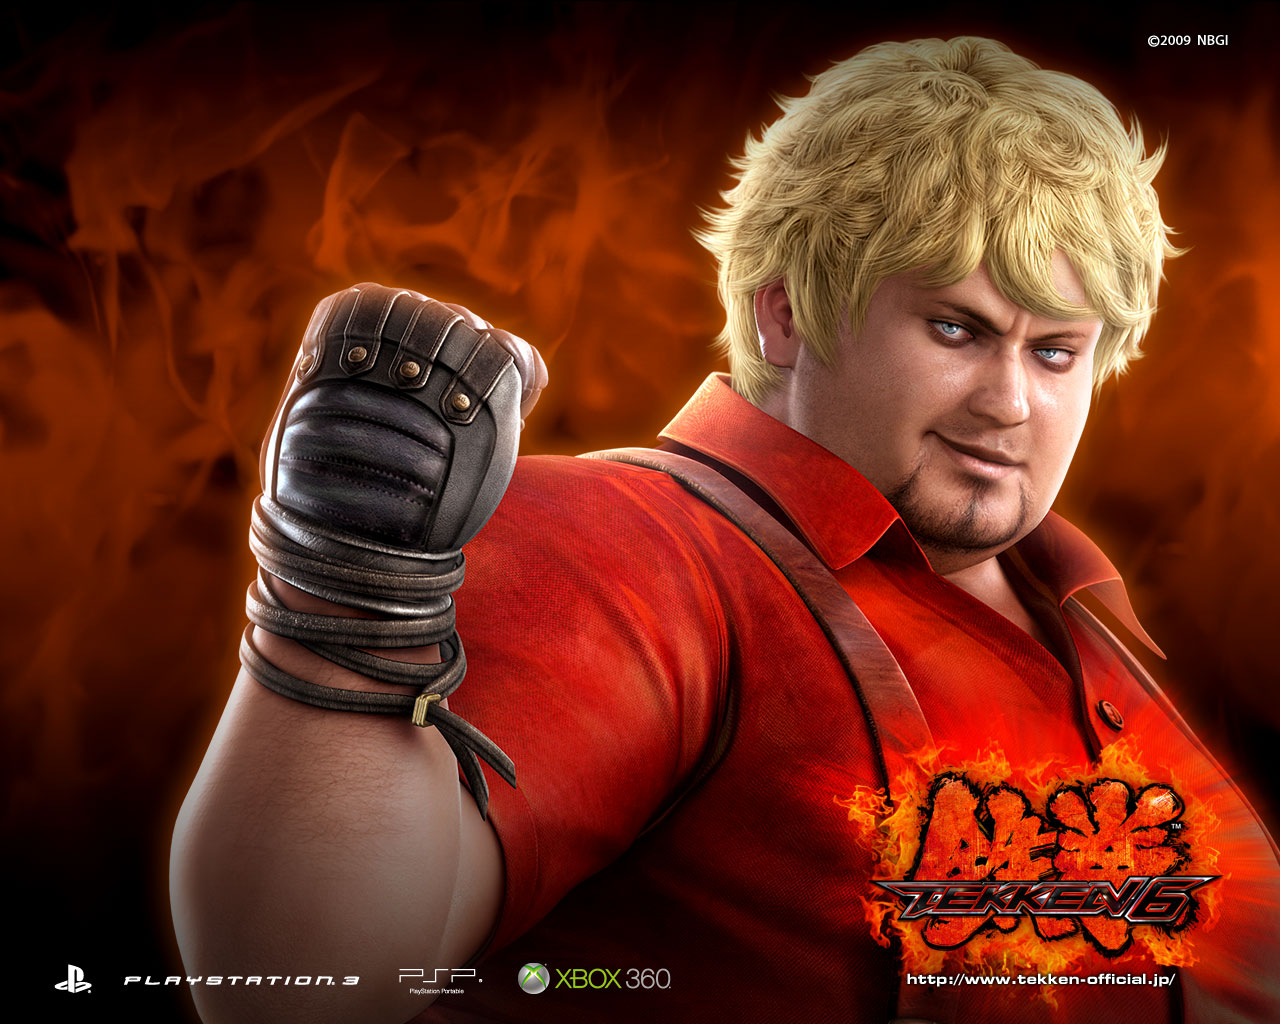 Tekken 6 Desktop Wallpaper Wallpapers 1280x1024